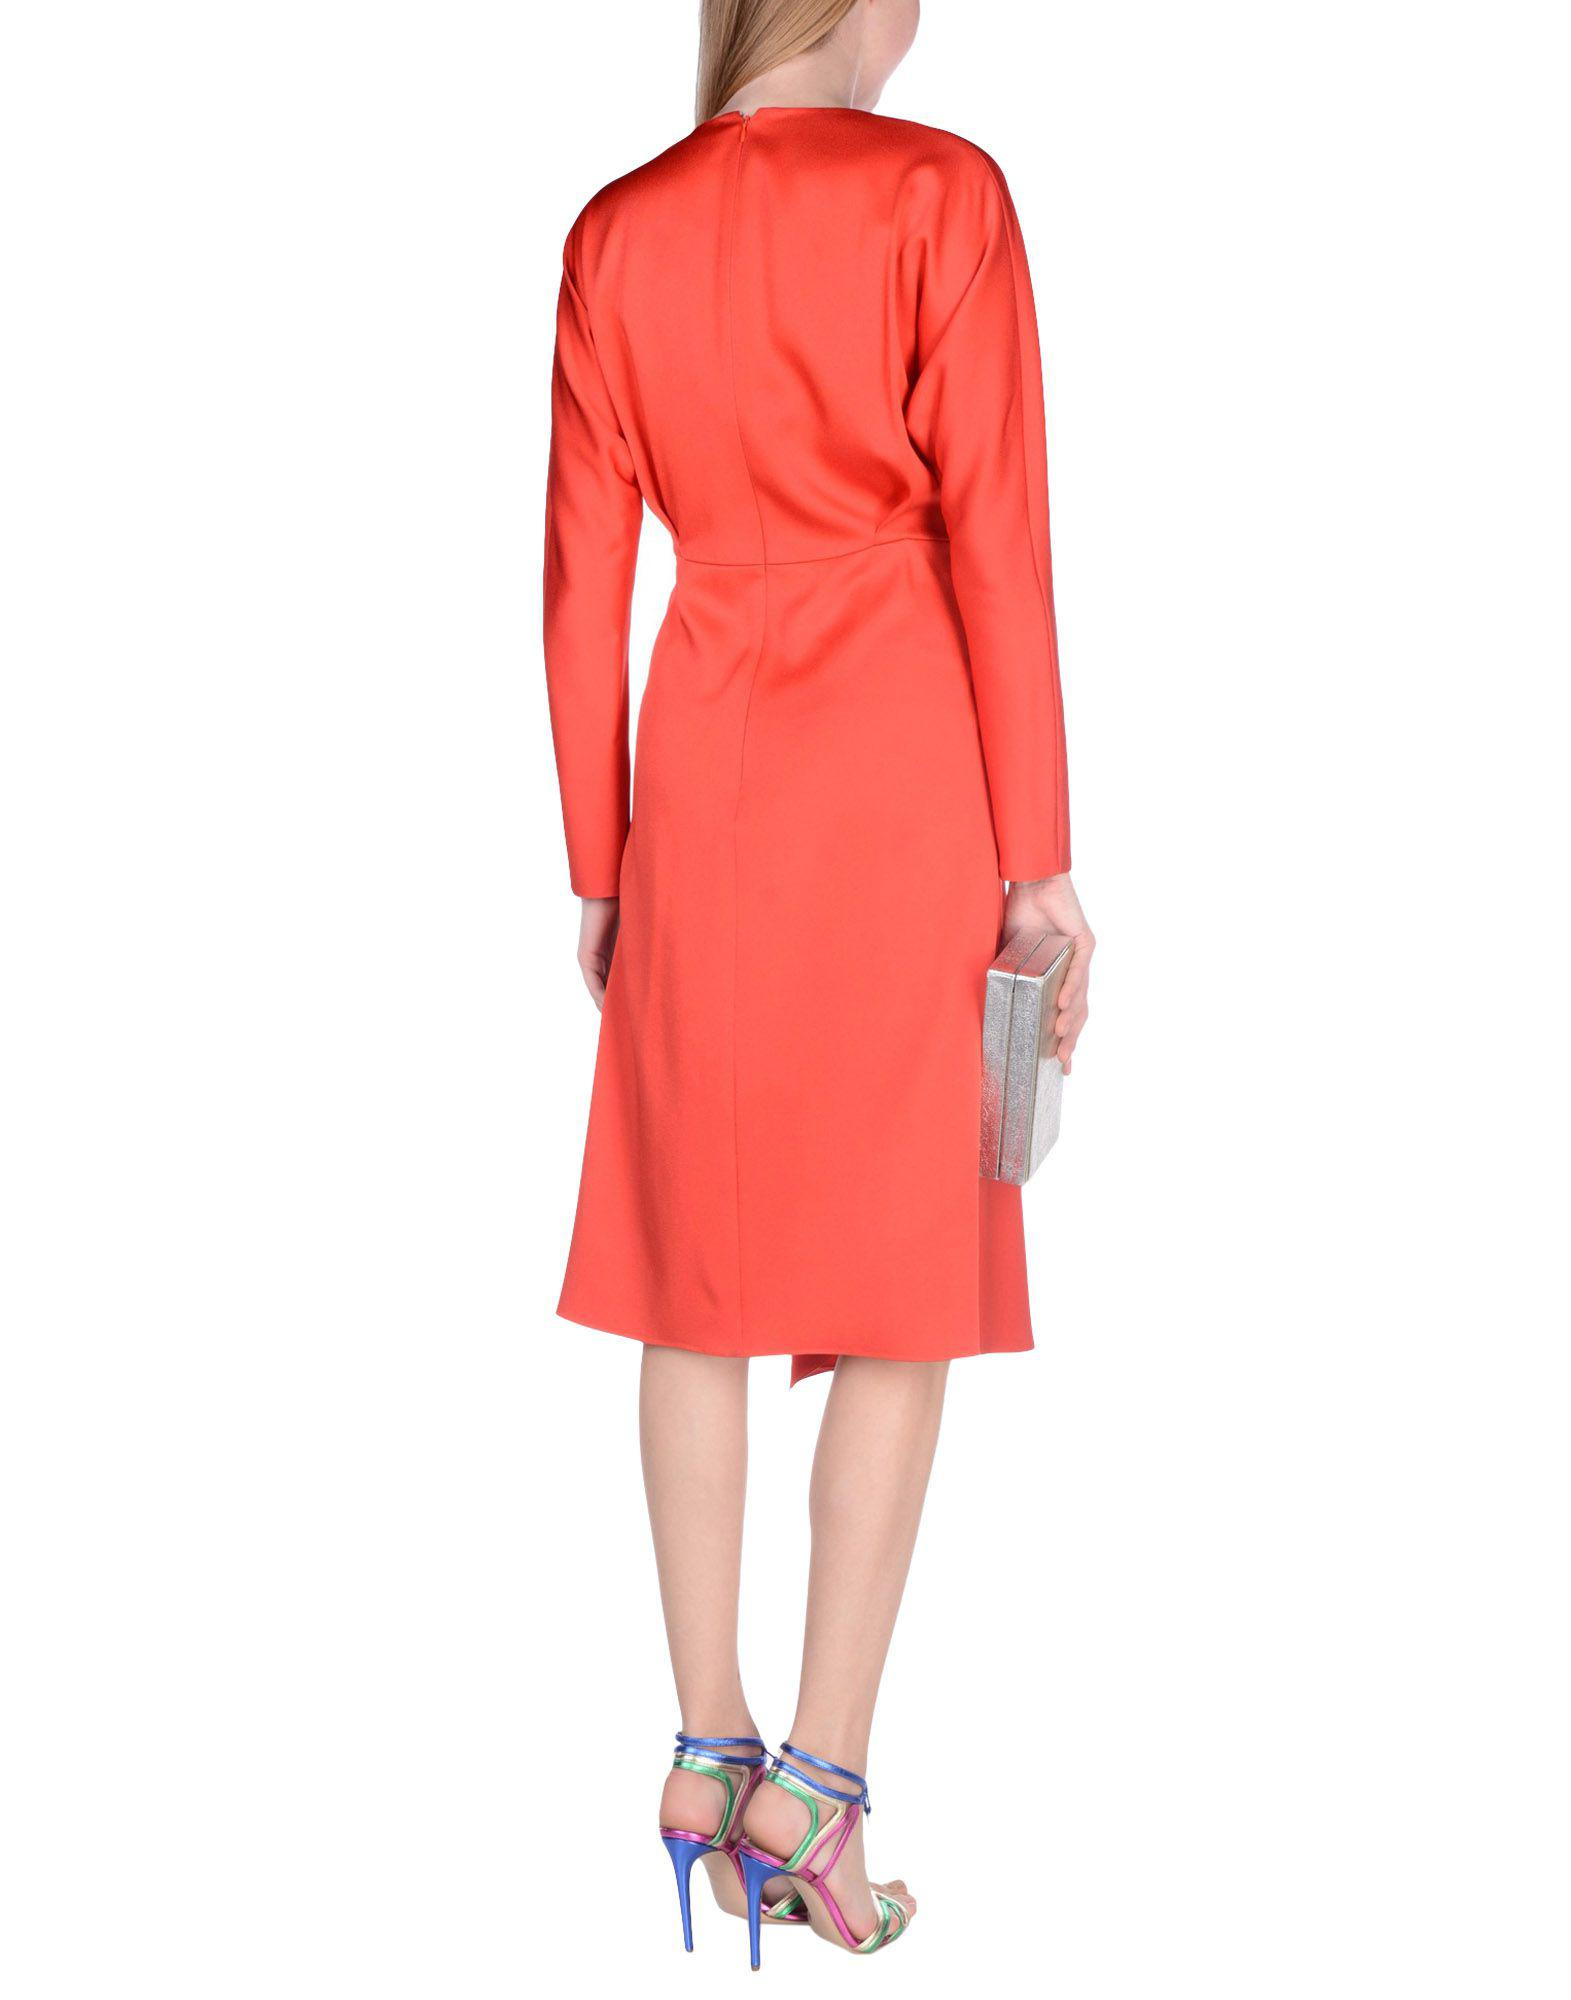 Red Knee Length Dress Victoria Beckham